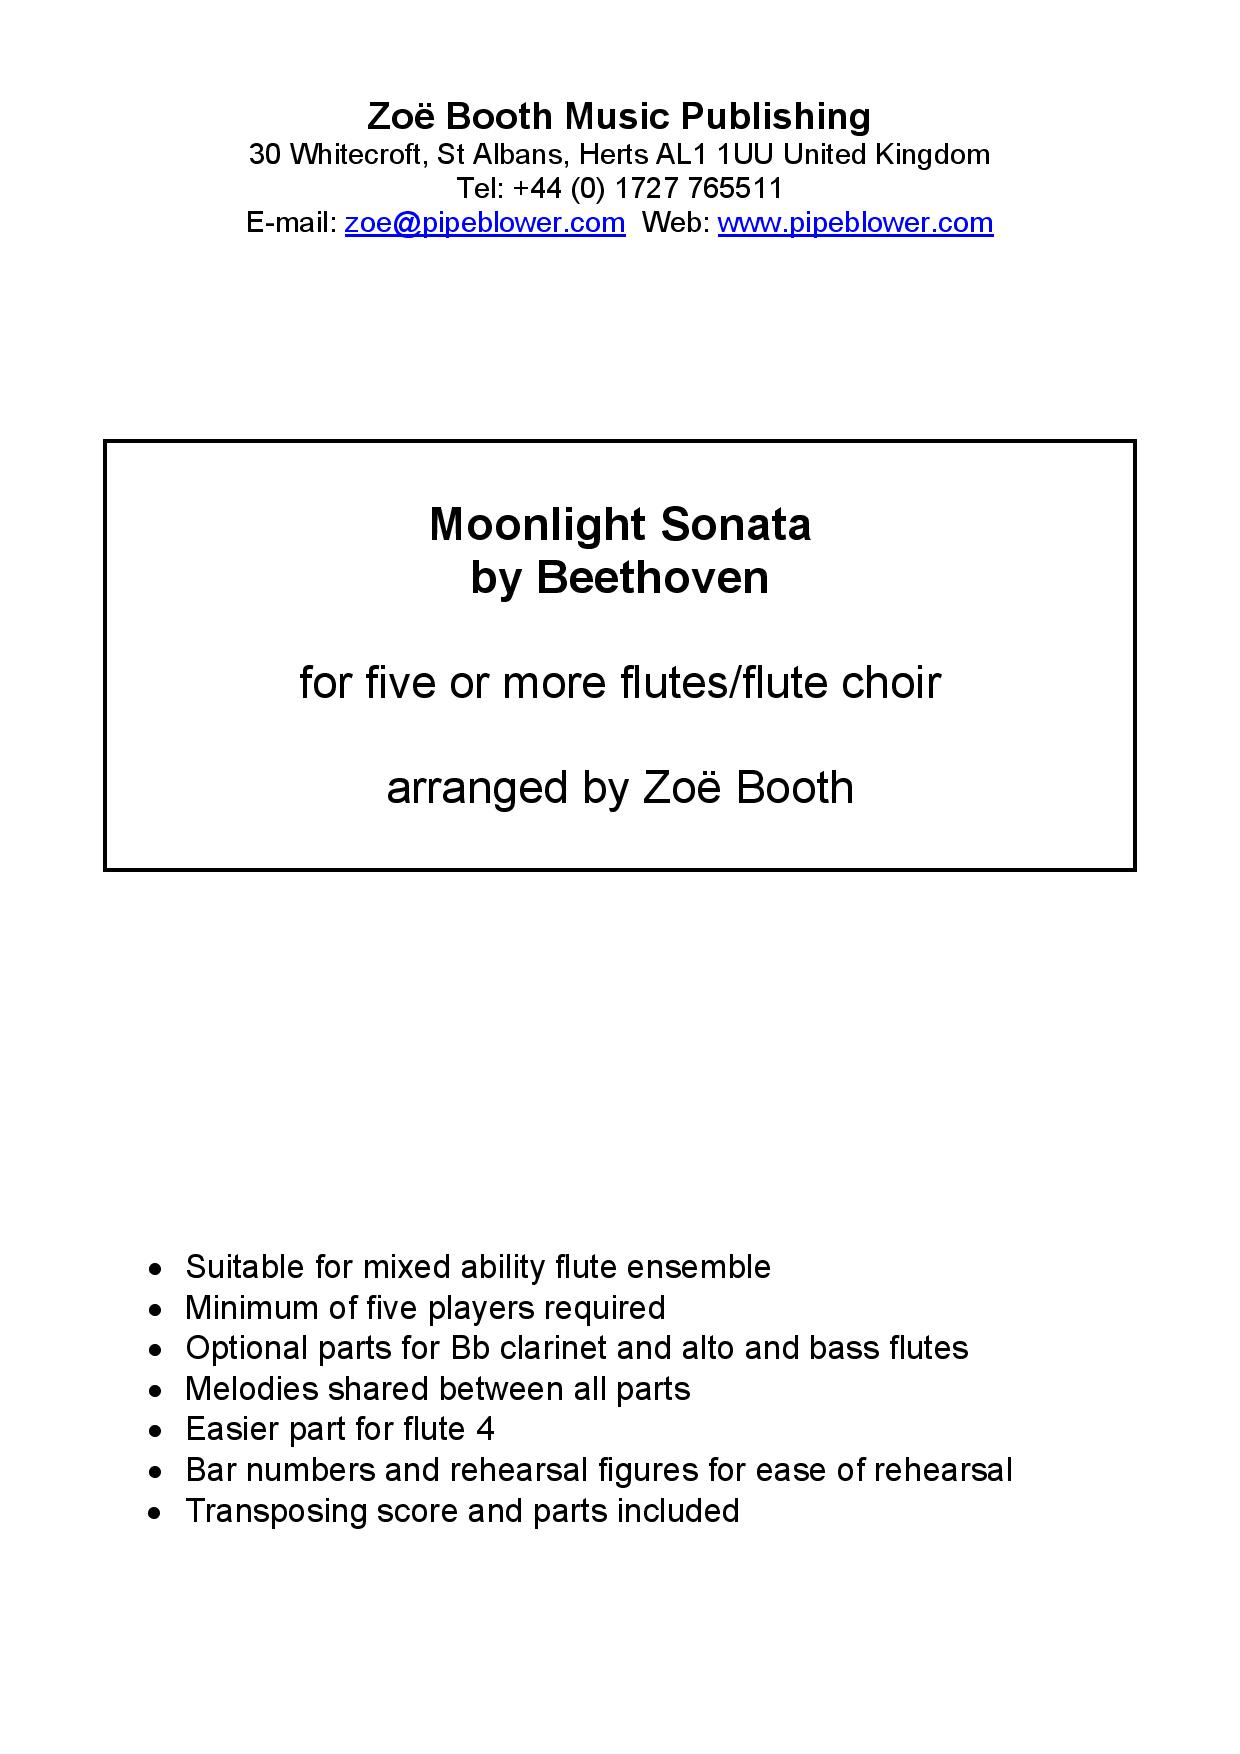 Moonlight Sonata by Beethoven,  arranged by Zoë Booth for five or more flutes/flute choir